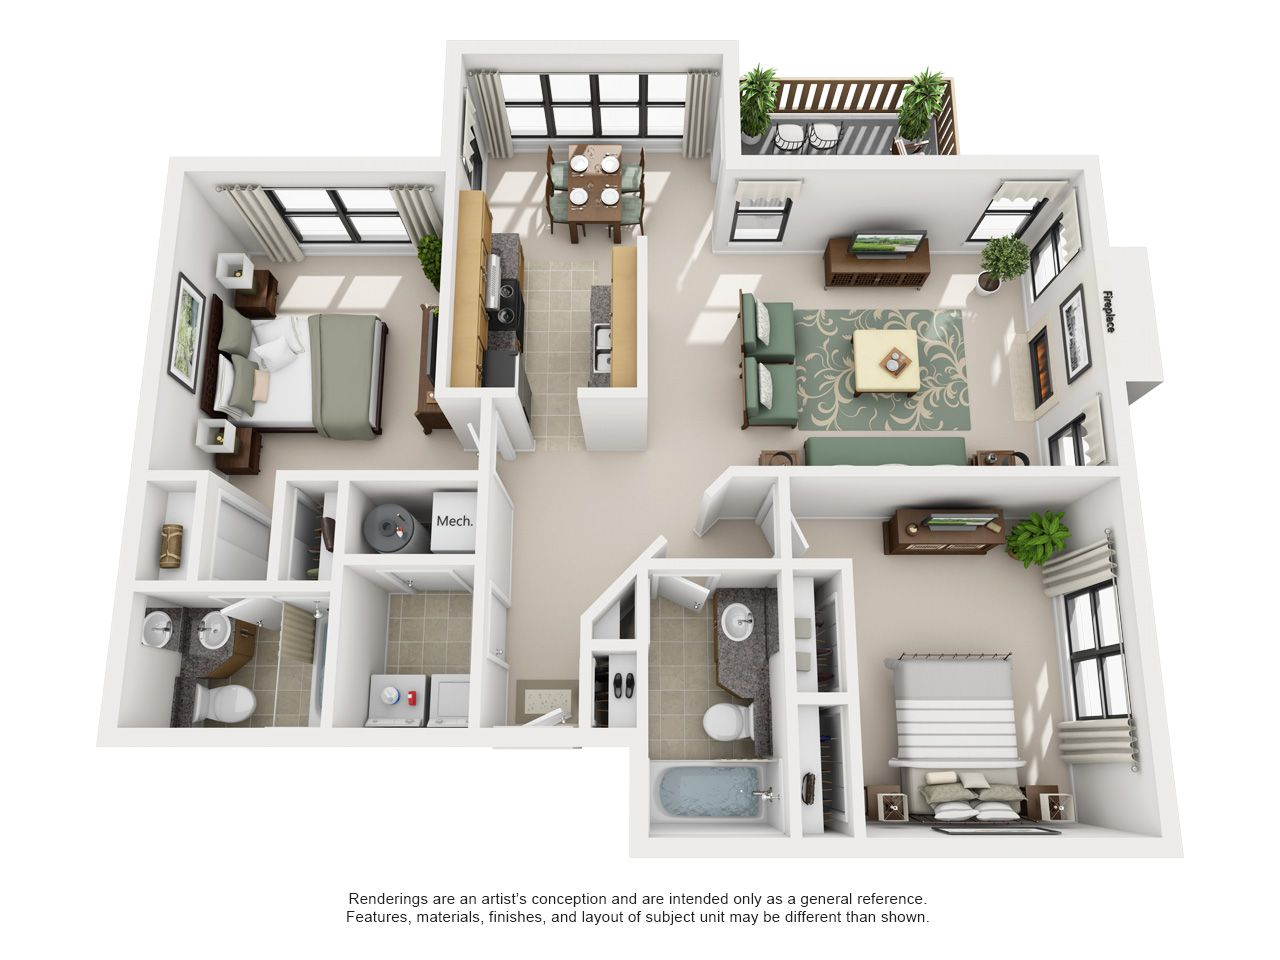 Studio 1 2 Bedroom Apartments In Smyrna Ga My House Plans Apartment Layout Apartment Plans